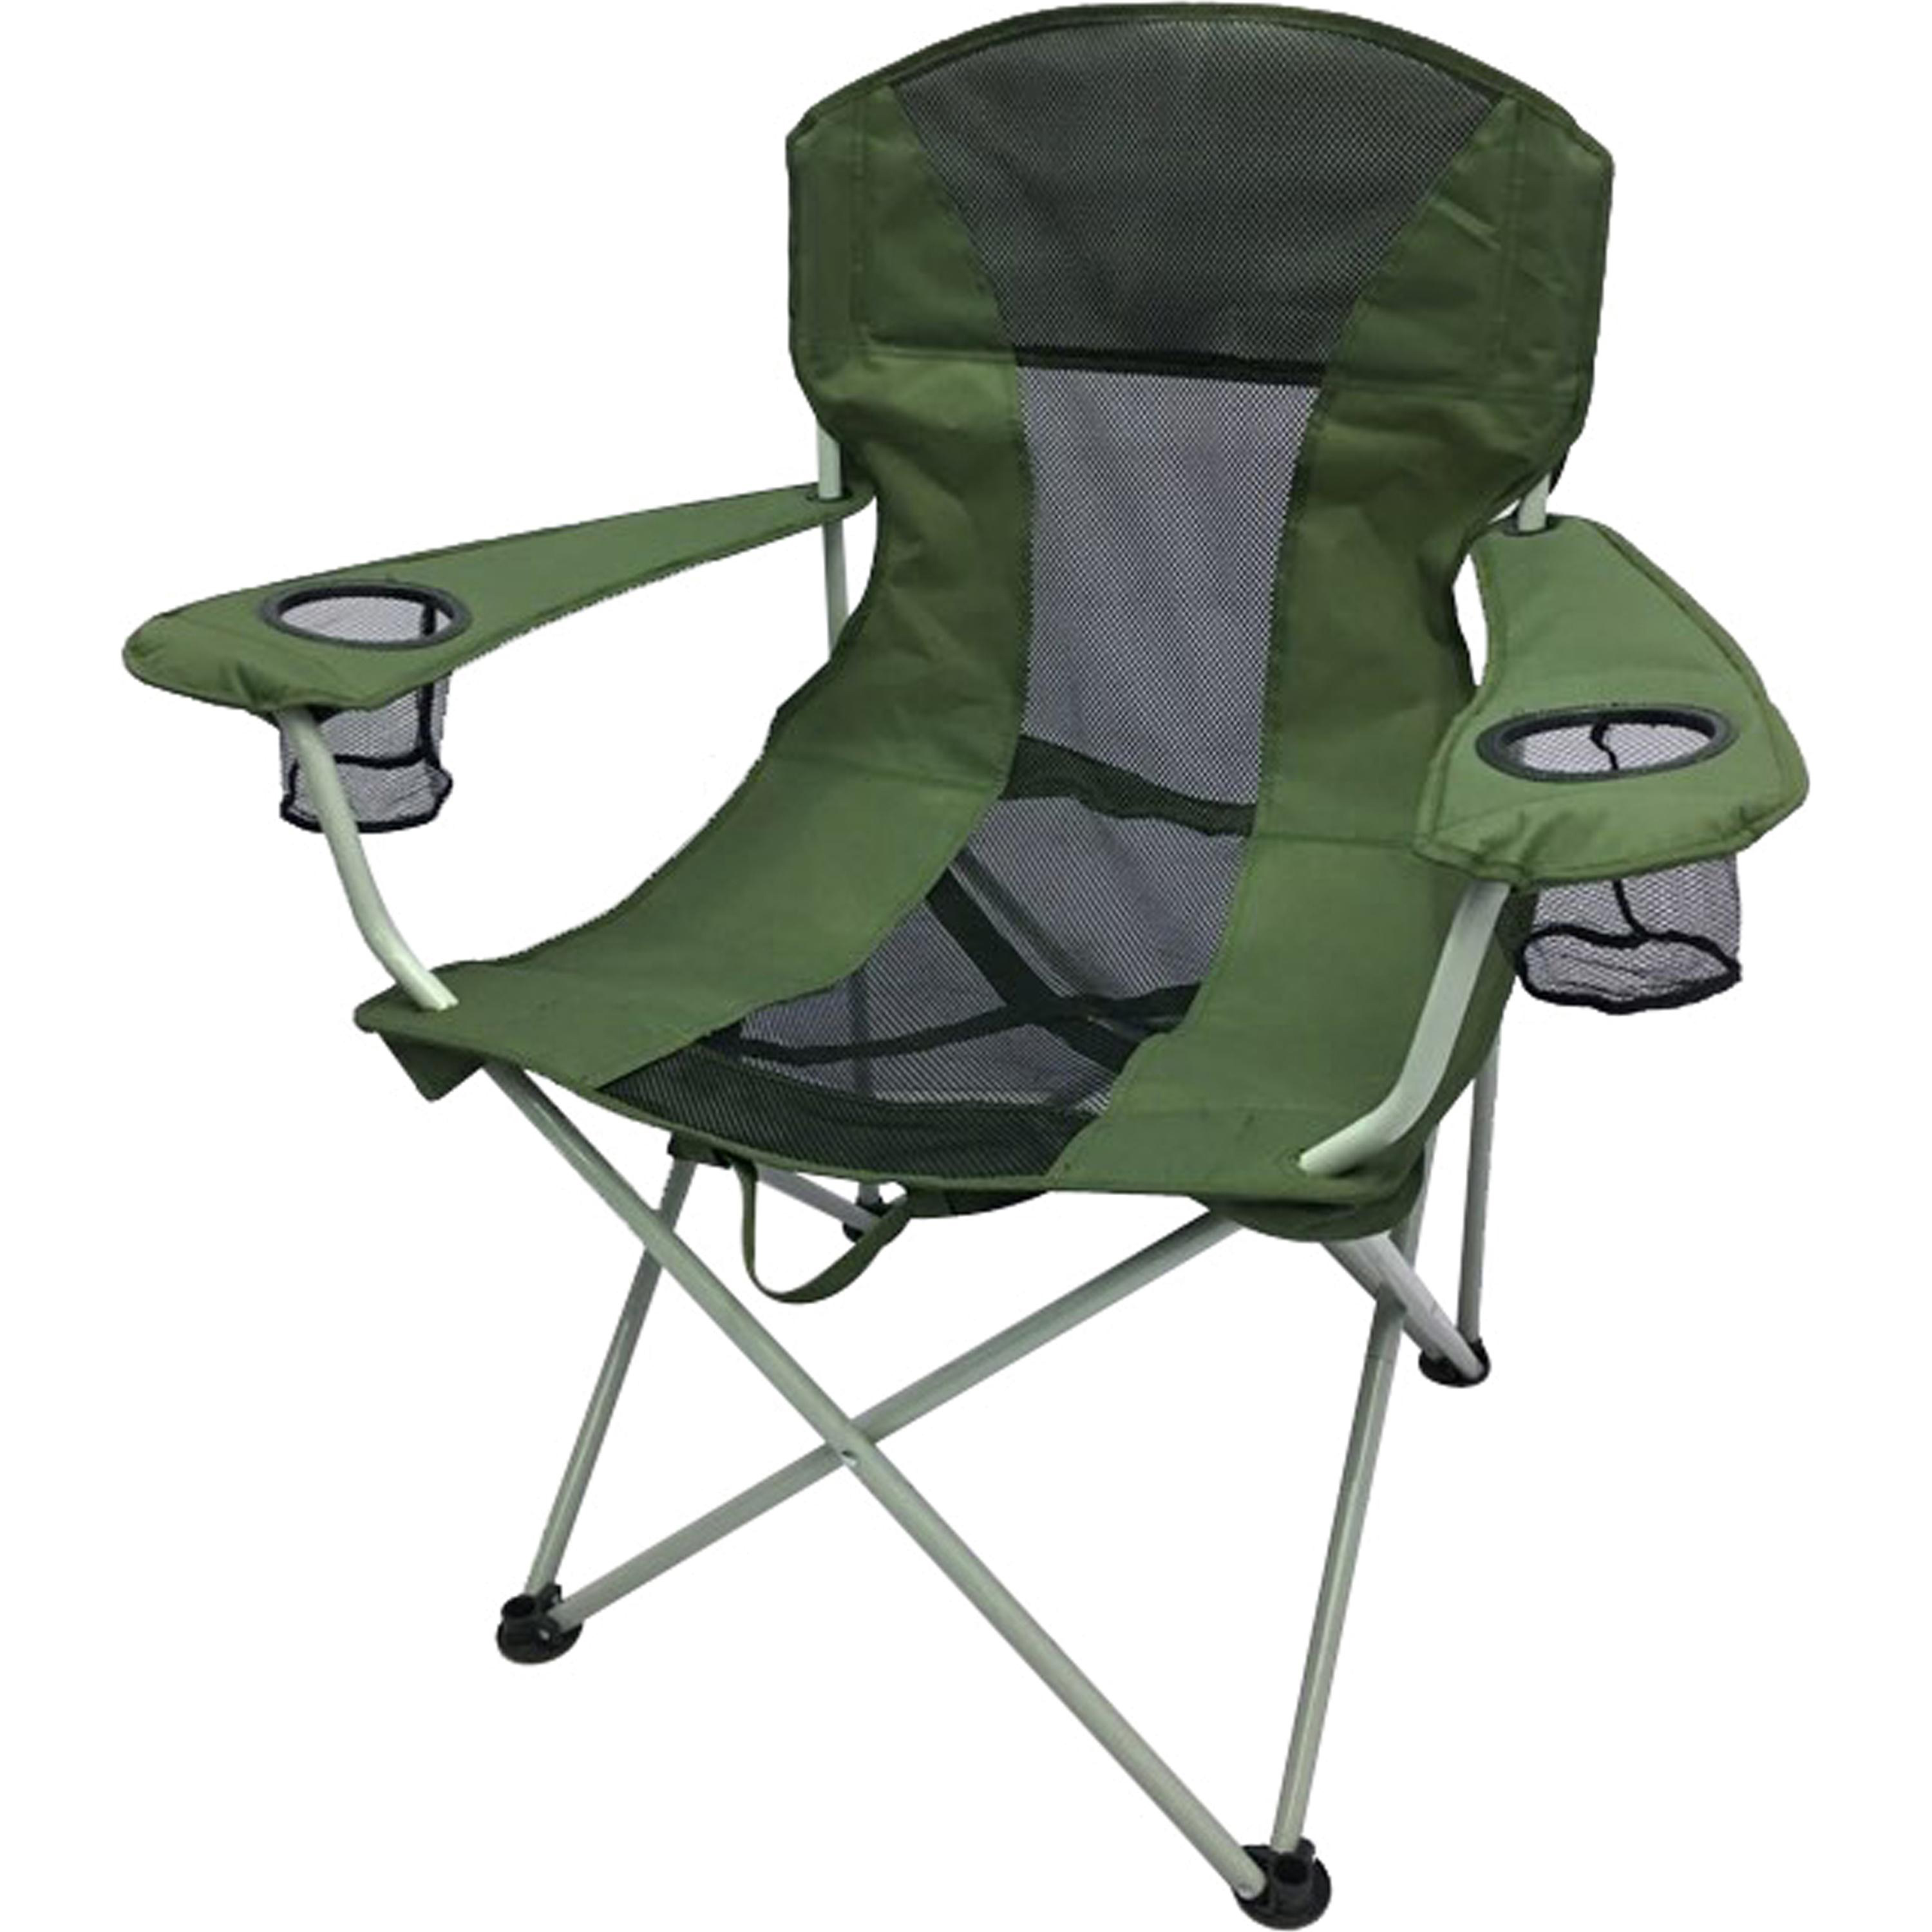 ozark trail oversized mesh chair preston accessories finding lounge with detached footrest